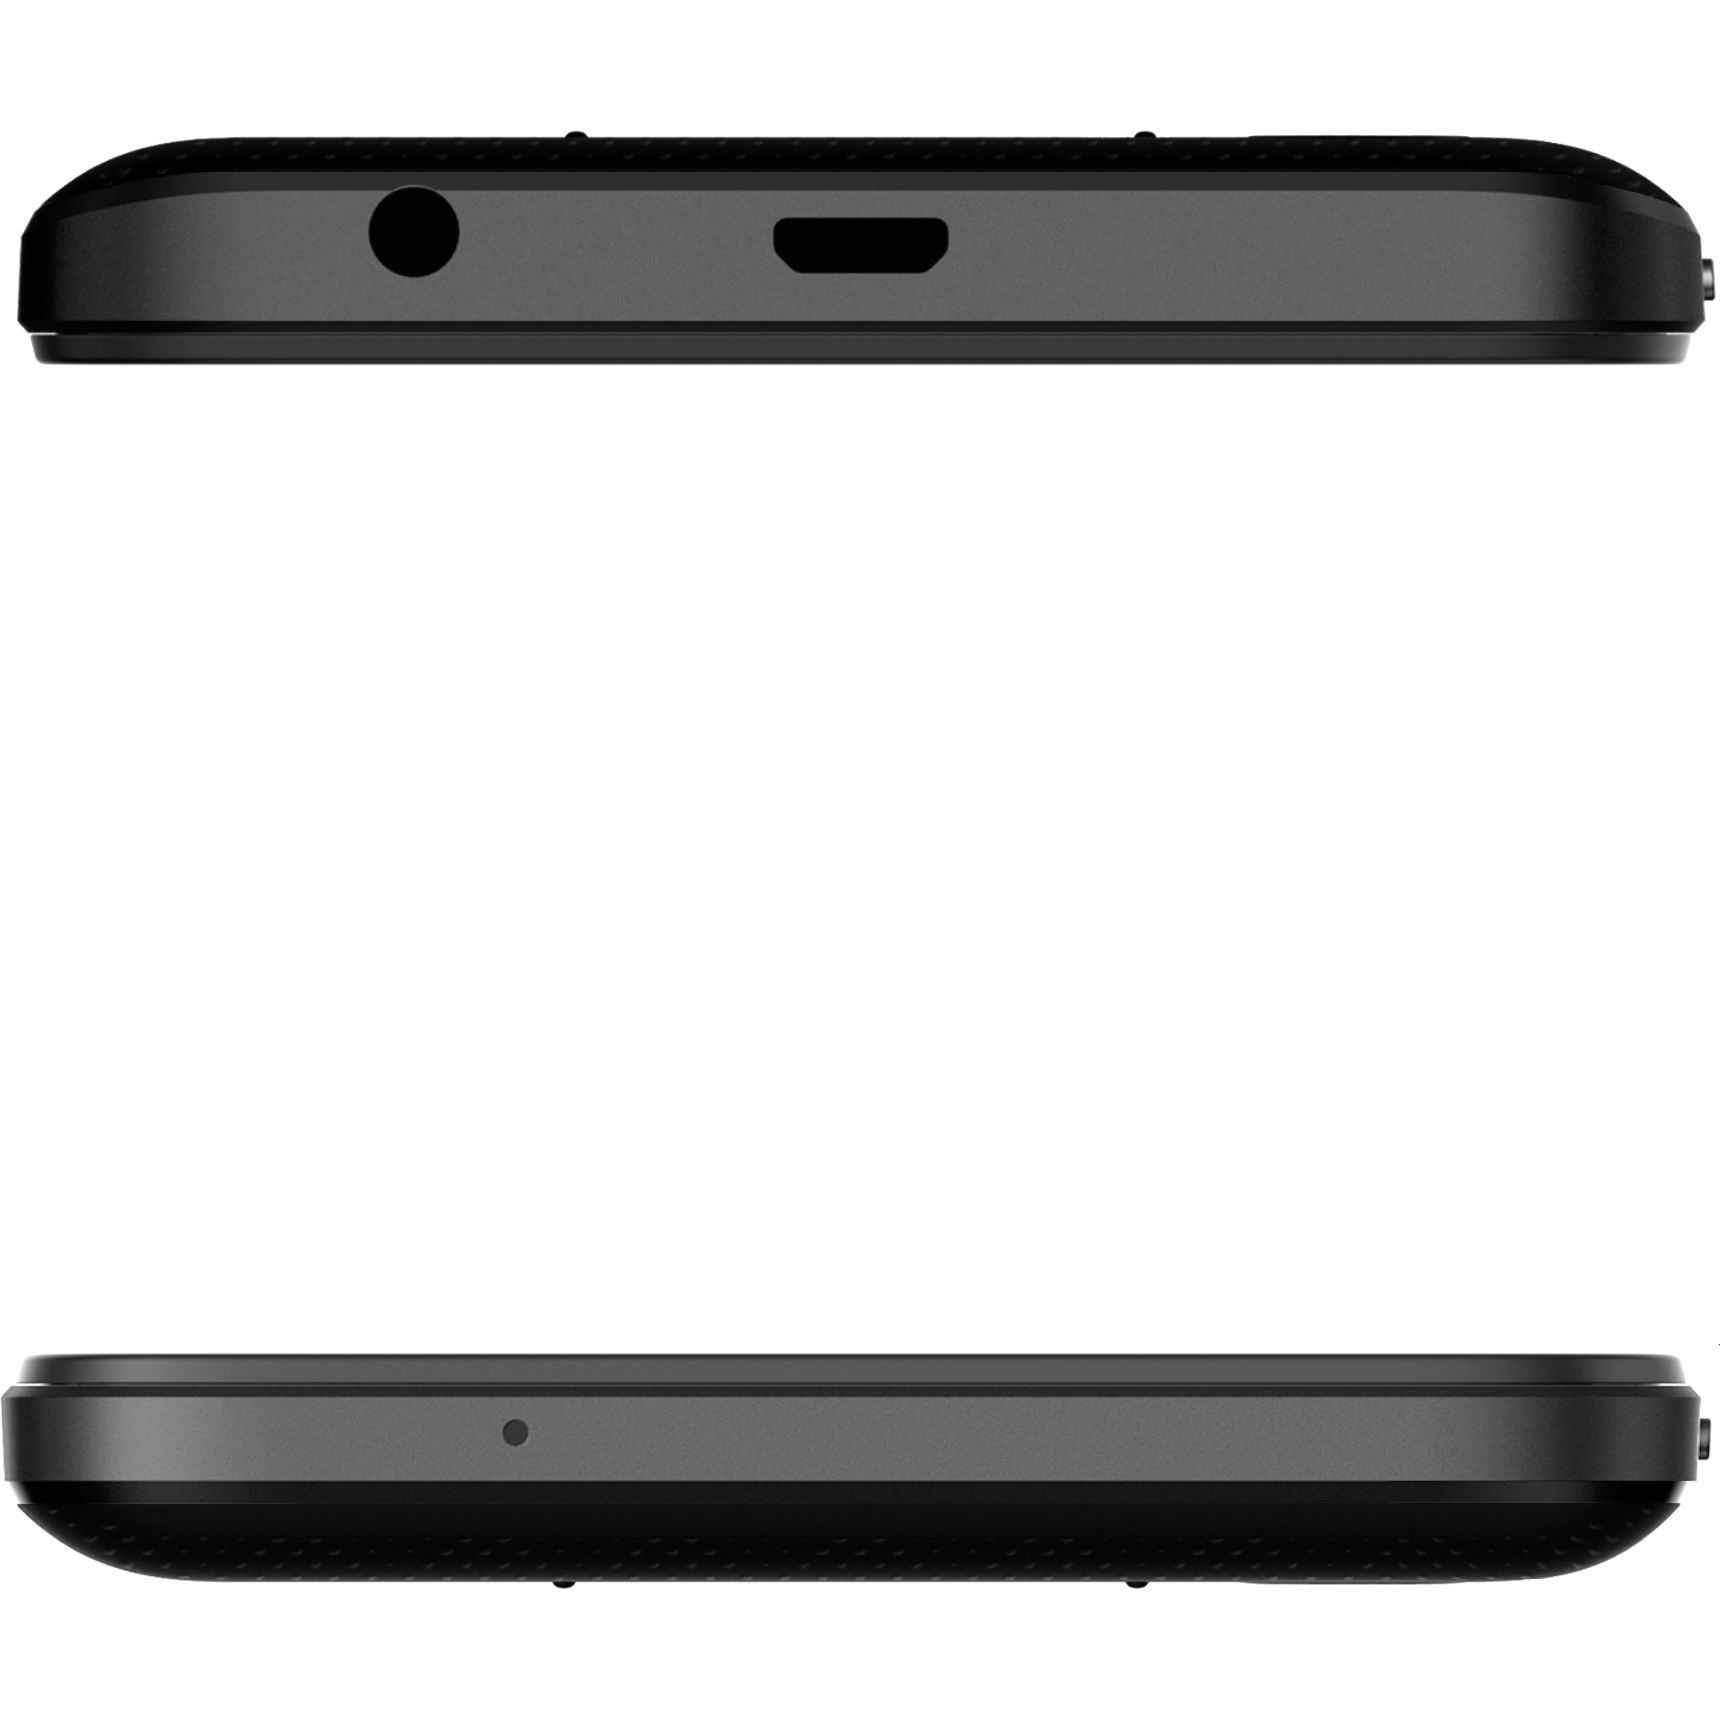 ZTE Blade A601 - images